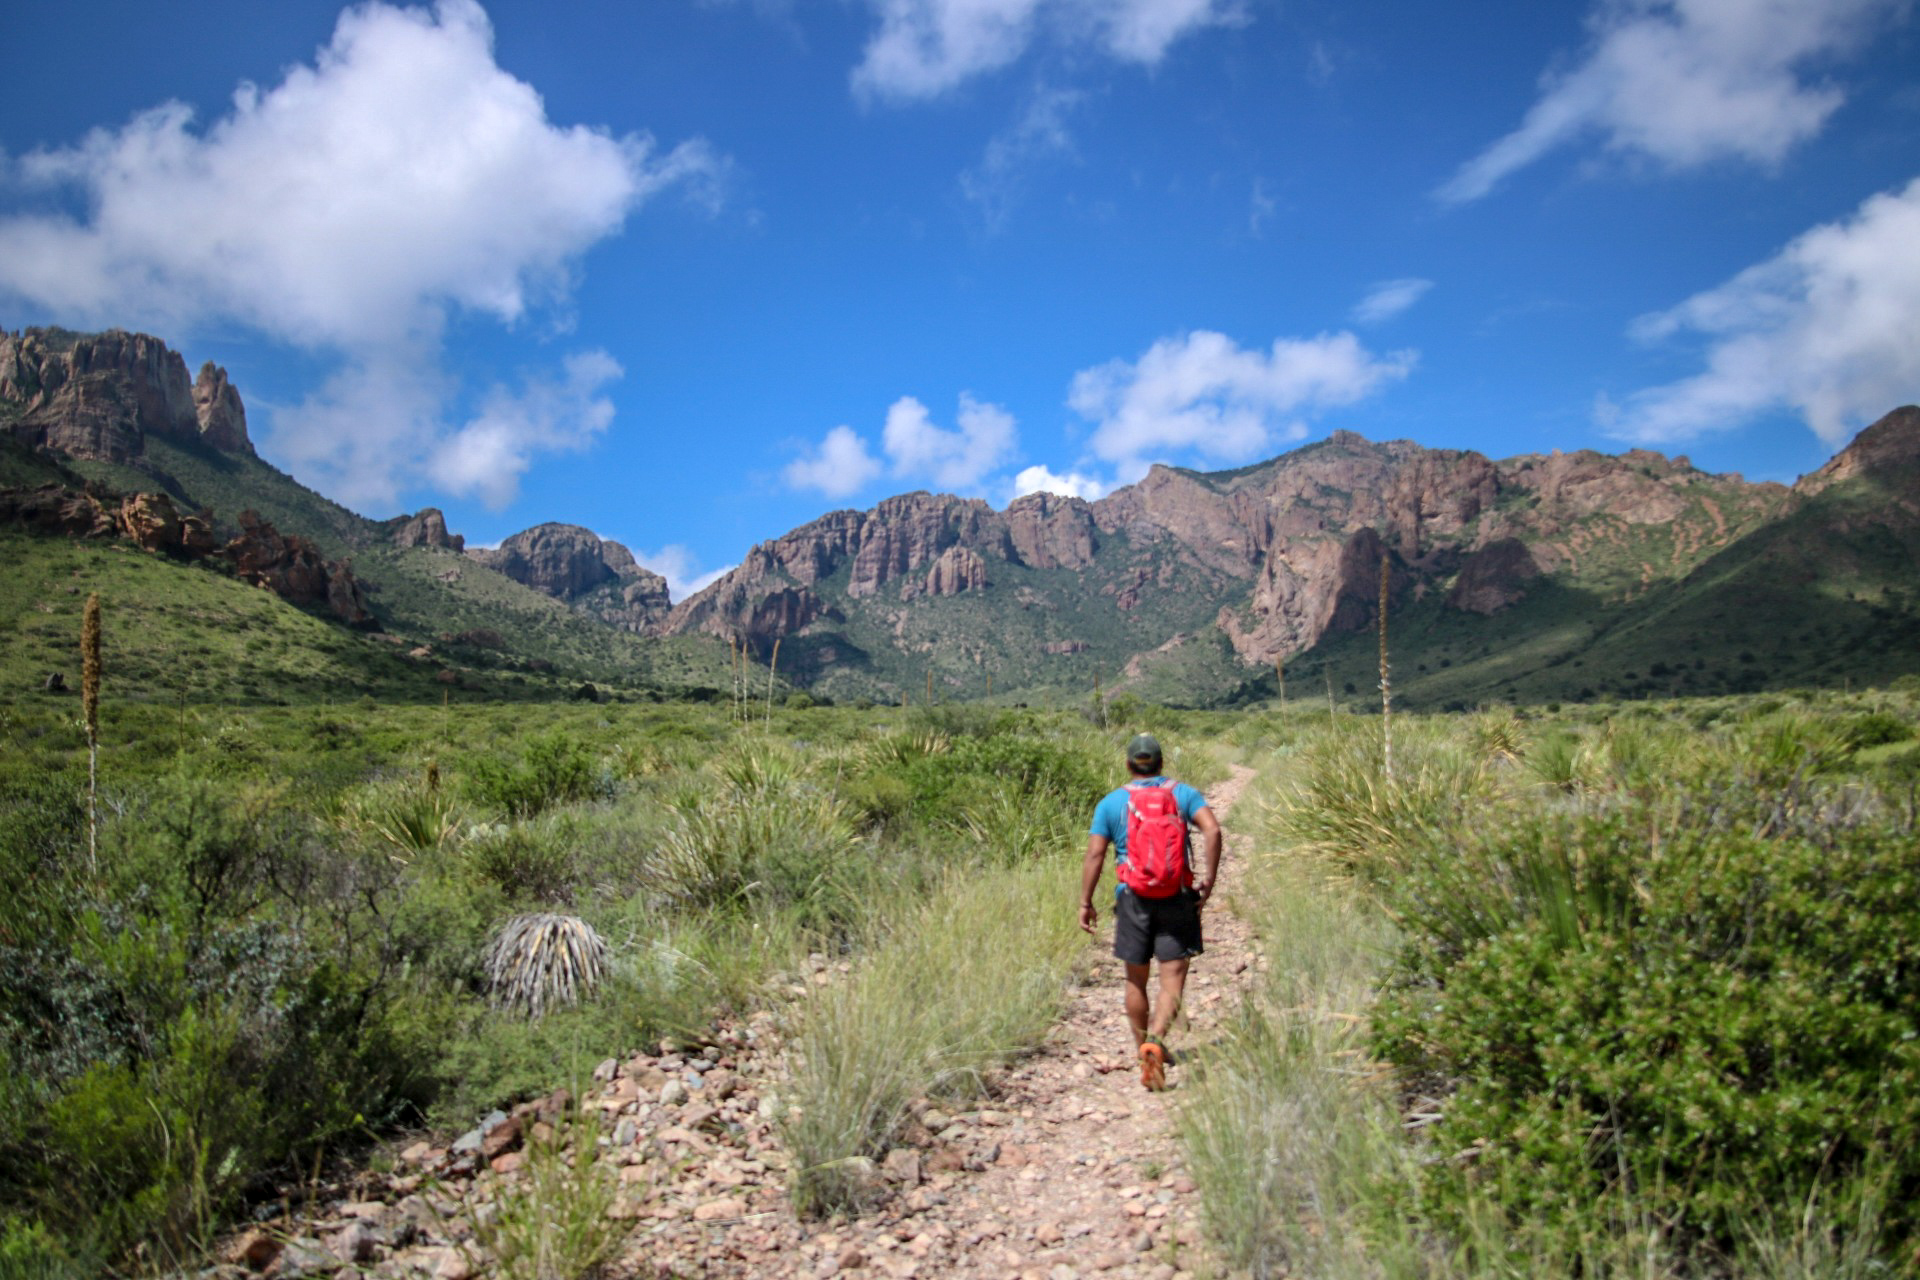 Big BEND IS HUGE - The BIG BEND CHAMBER OF COMMERCE is dedicated to